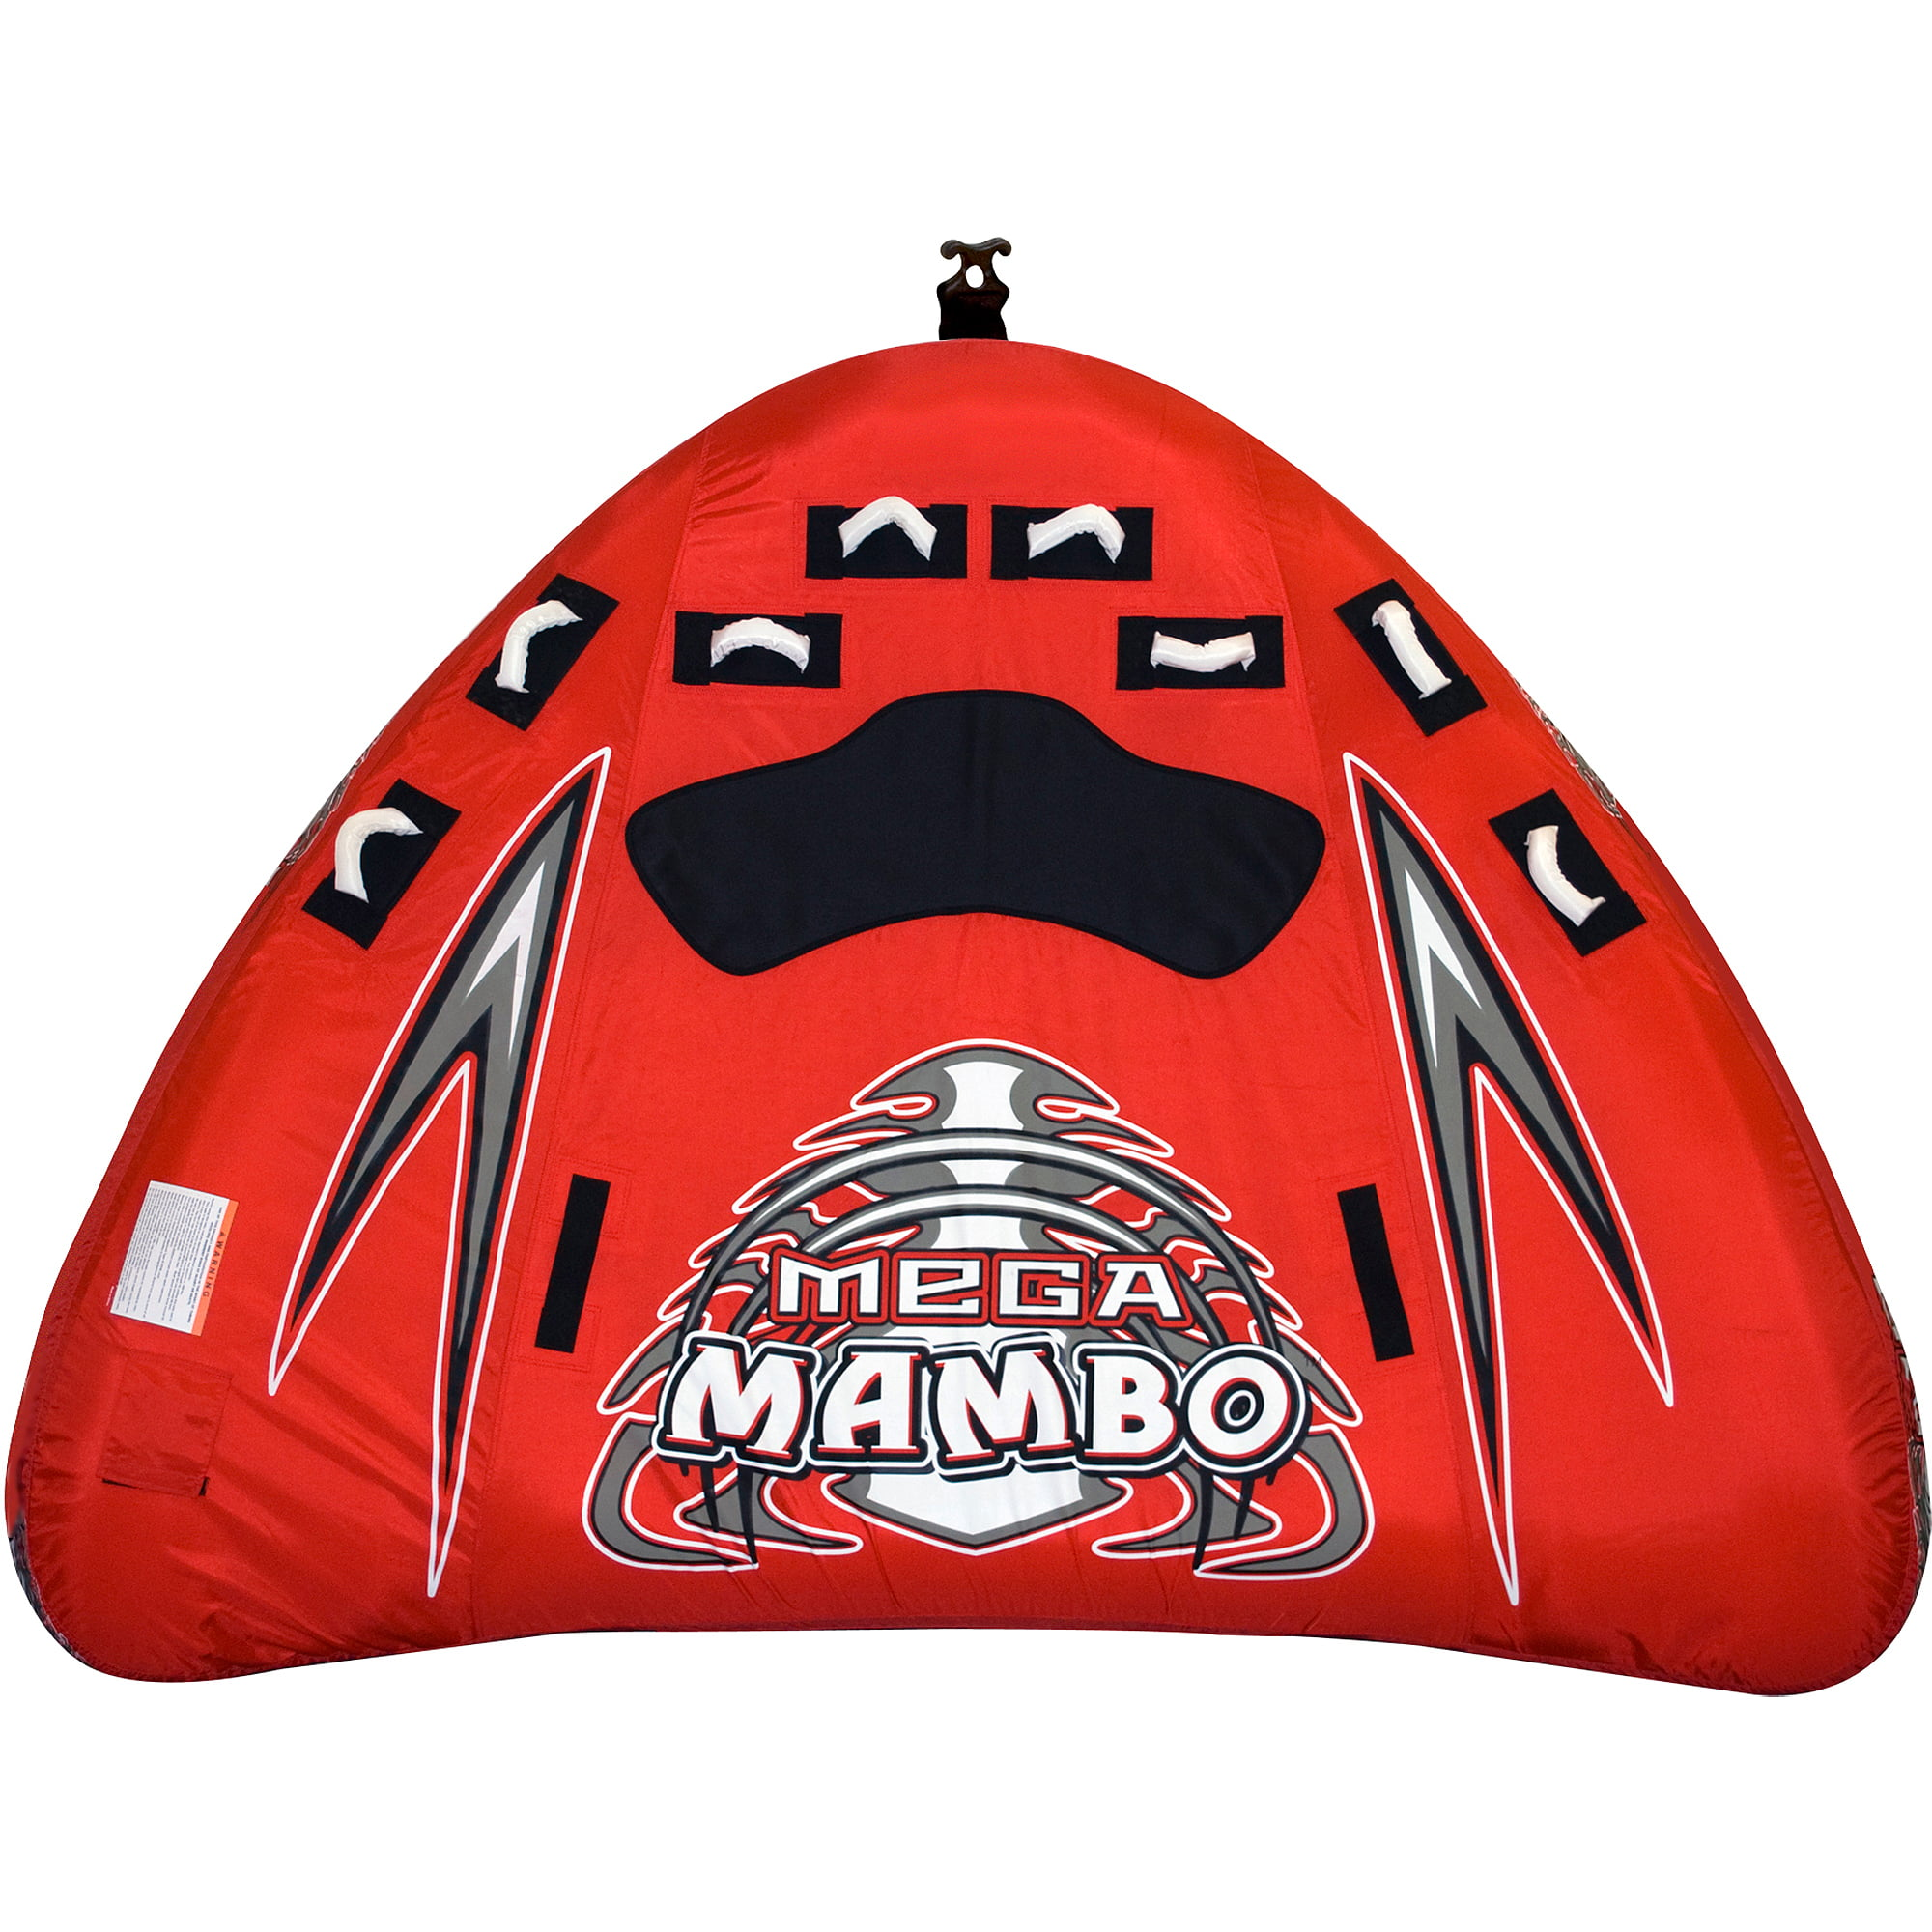 Rave Sports Mega Mambo 4-Rider Sleek Fast Water Towable by Rave Sports